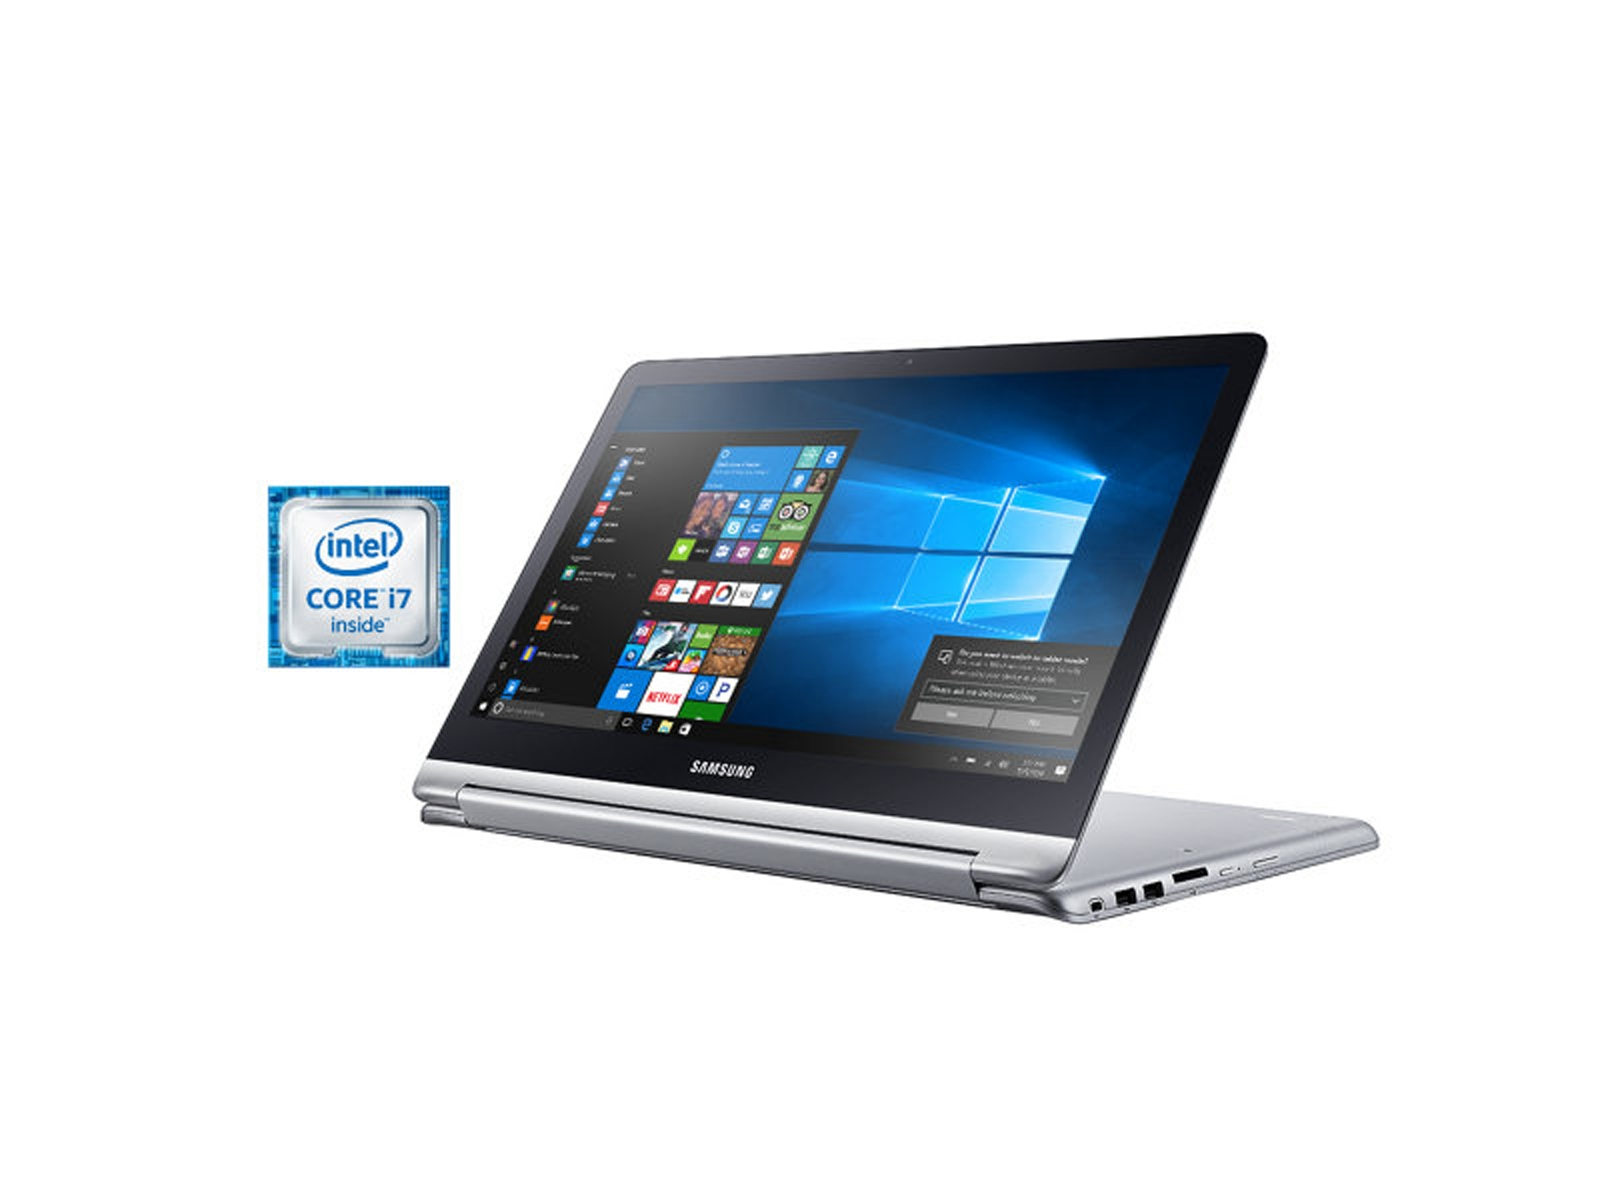 SAMSUNG NP700Z5BH SERIES 7 NOTEBOOK BLUETOOTH DRIVER DOWNLOAD